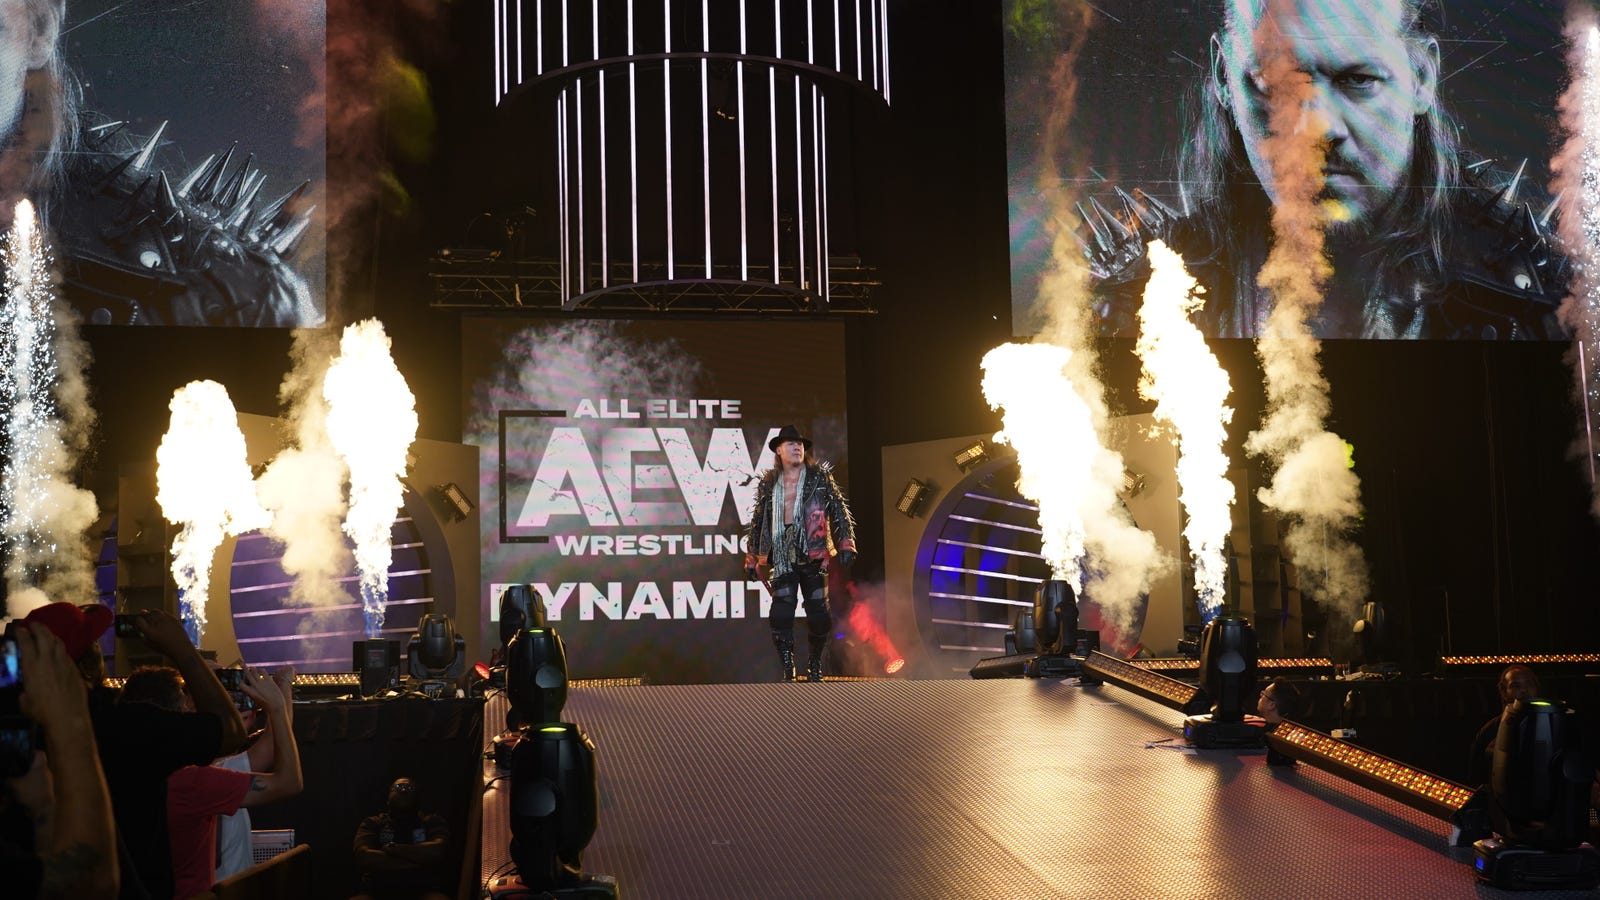 All Elite Wrestling Is Good, But It Will Have To Be More Unique To Be Great